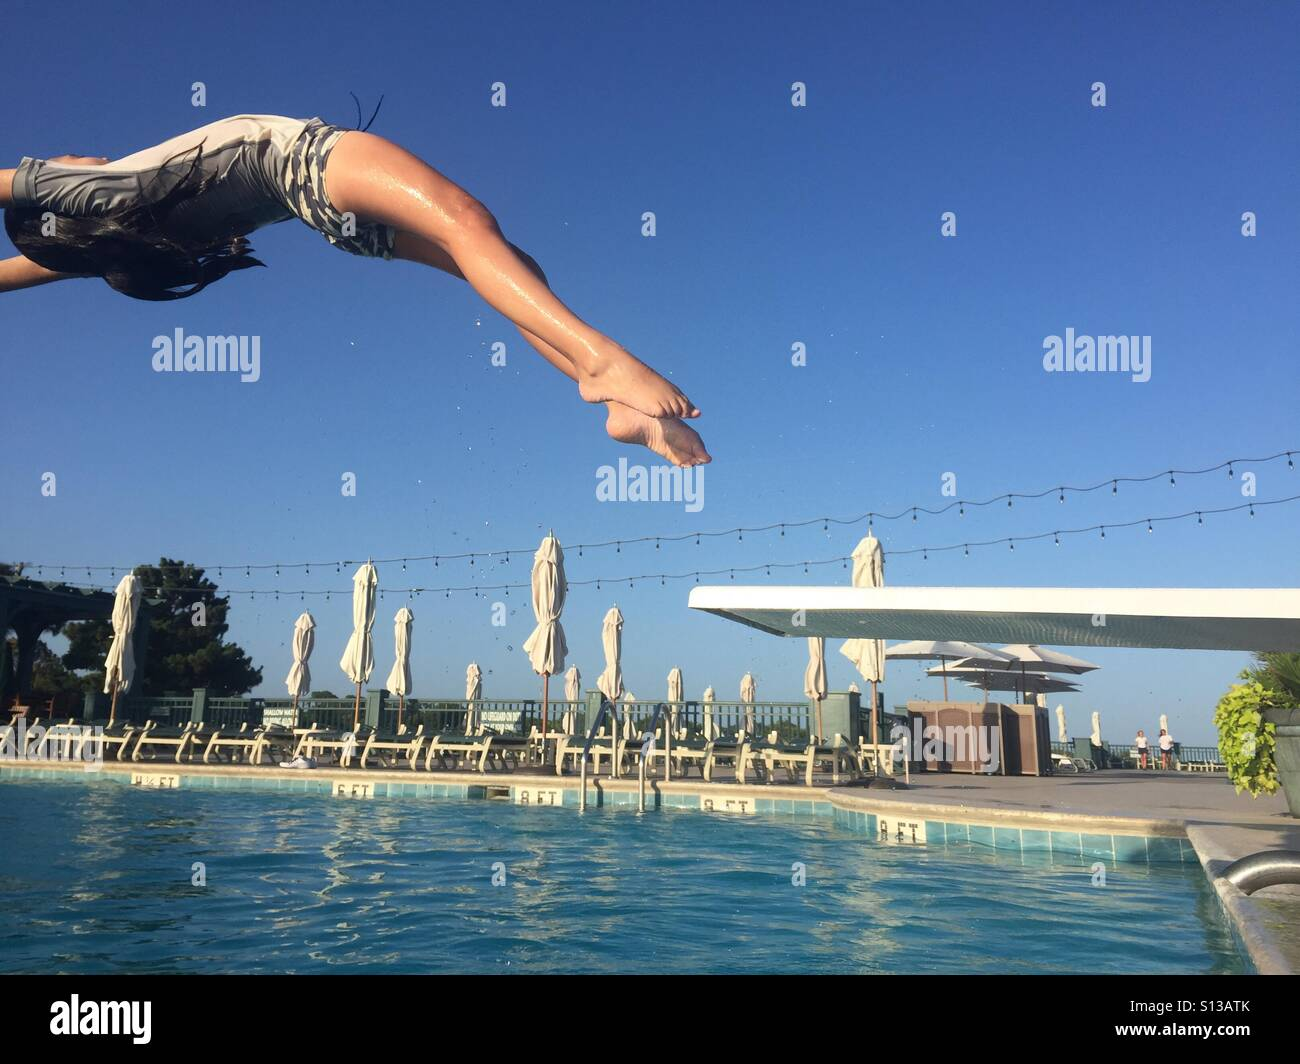 A child dives gracefully and backward off a diving board into a blue pool. - Stock Image